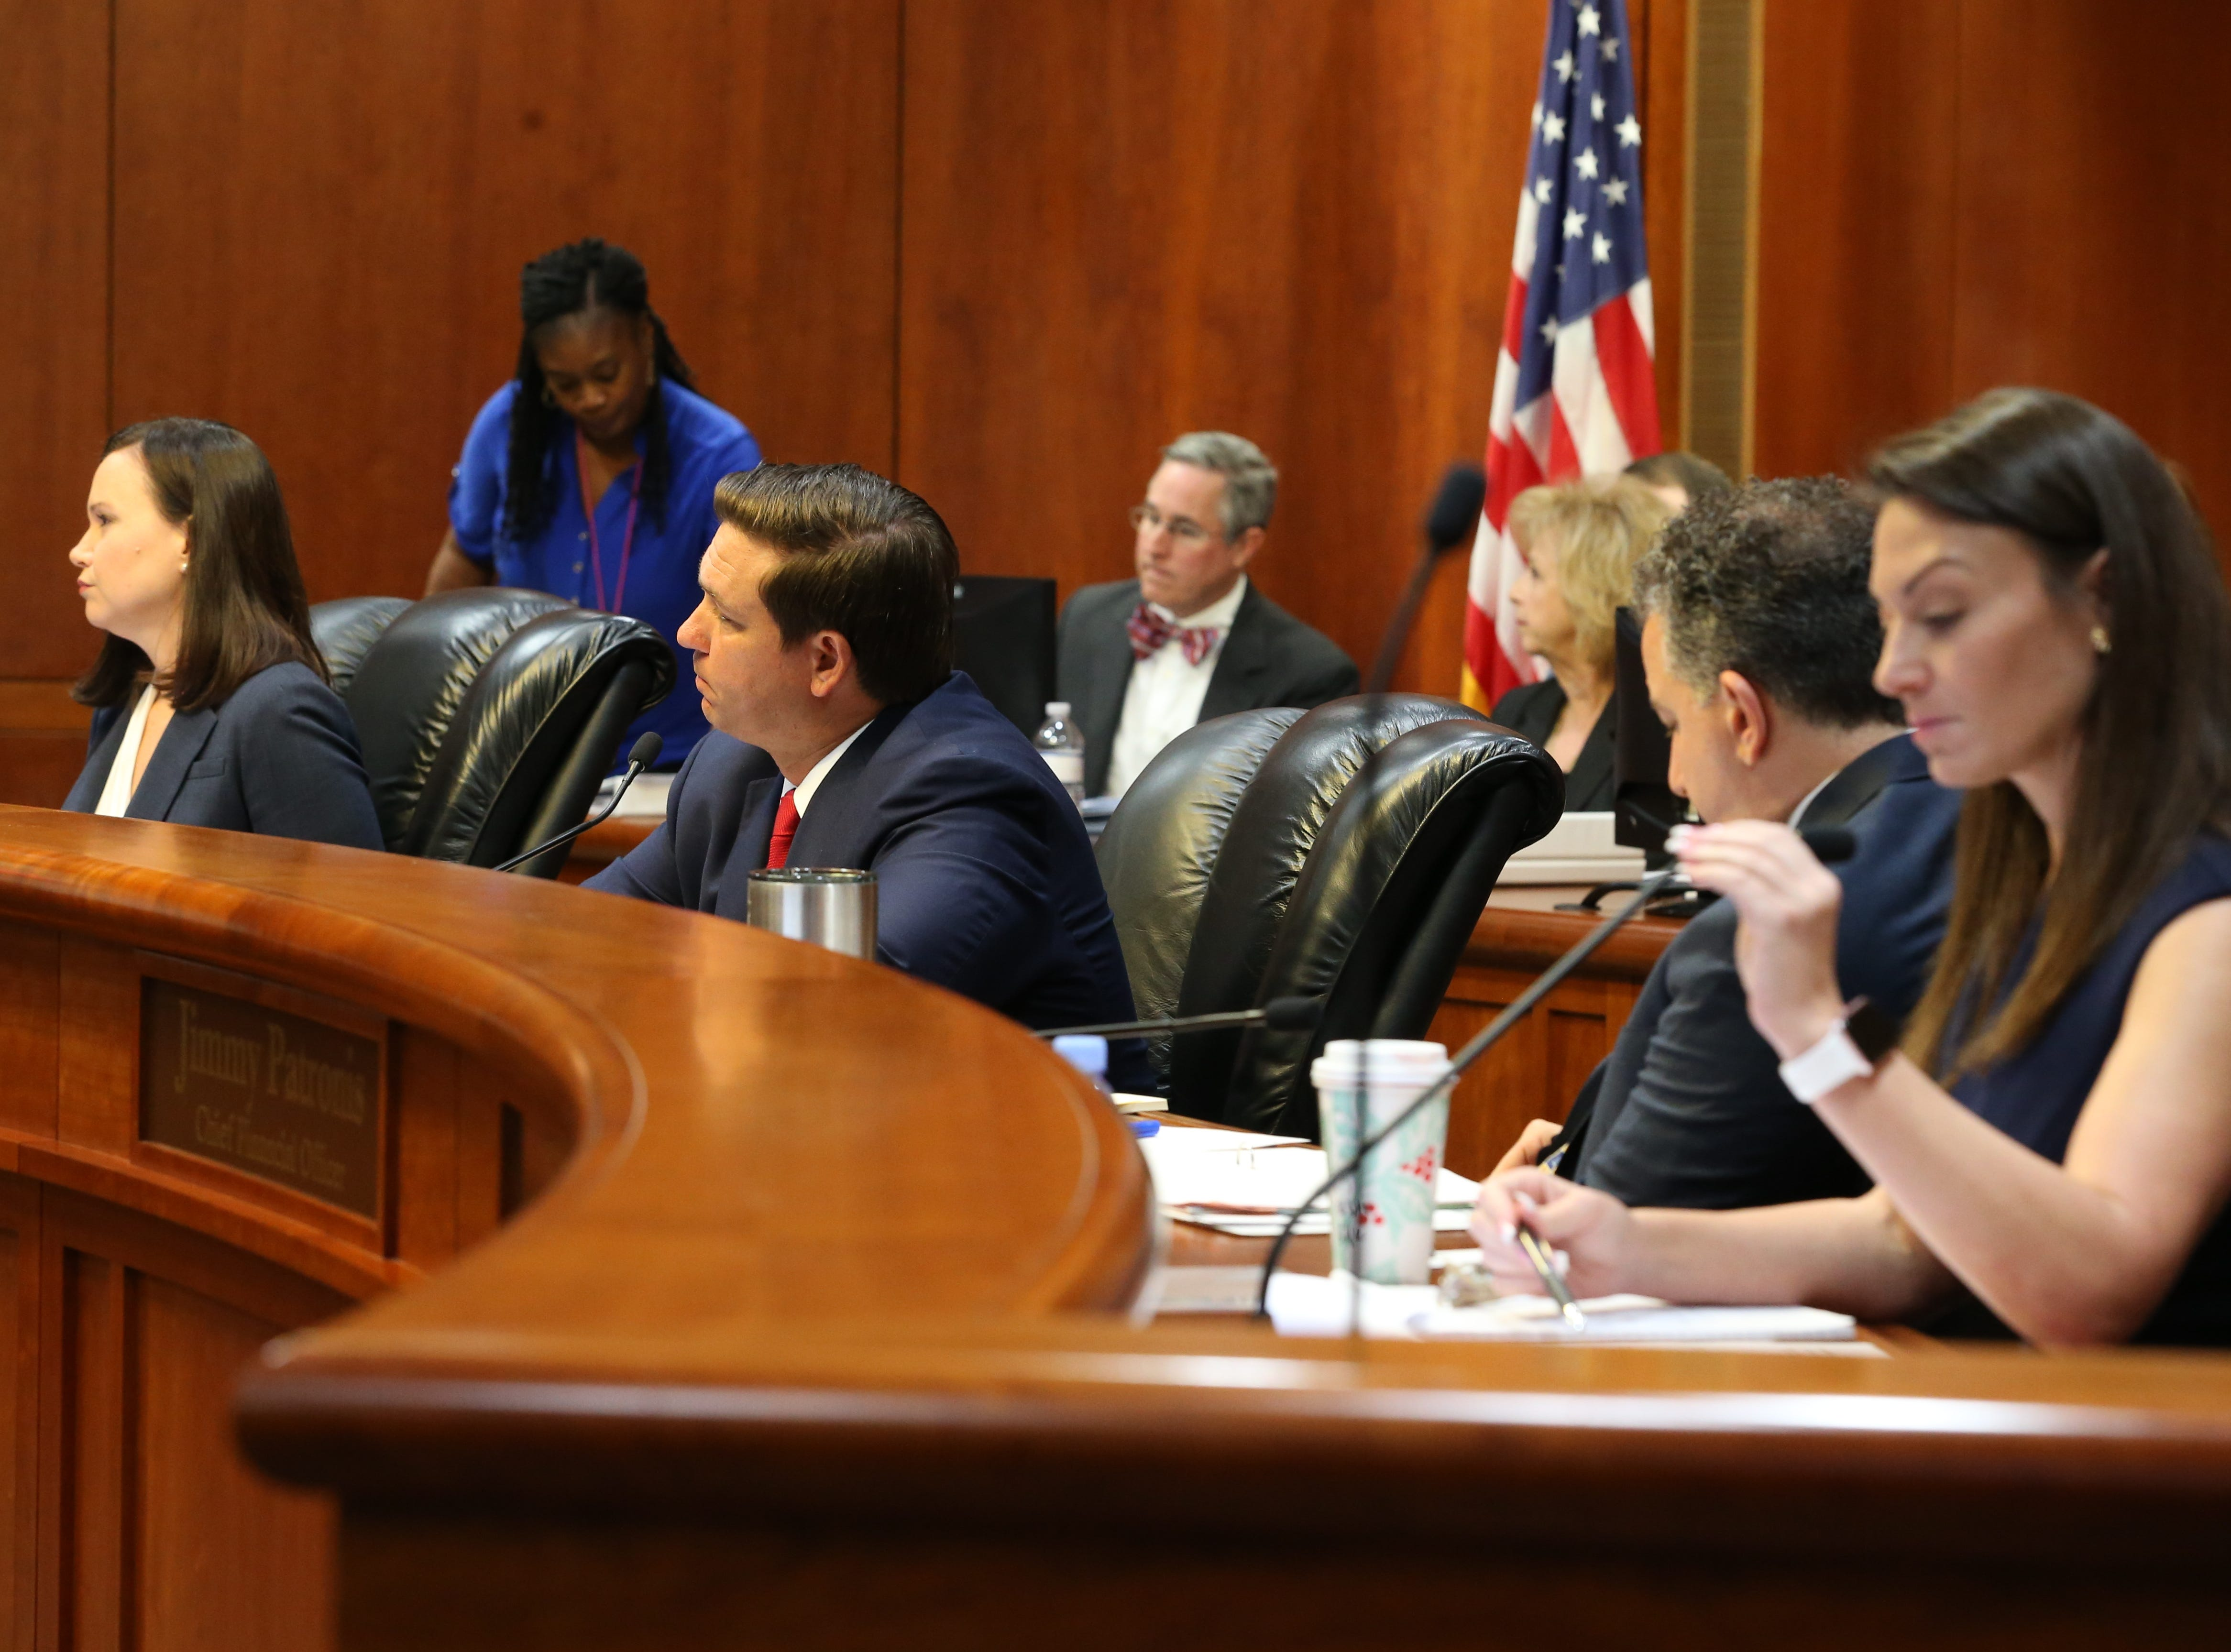 Gov. Ron DeSantis' Cabinet listens during a clemency board hearing where the Groveland Four were pardoned Friday, Jan. 11, 2019.